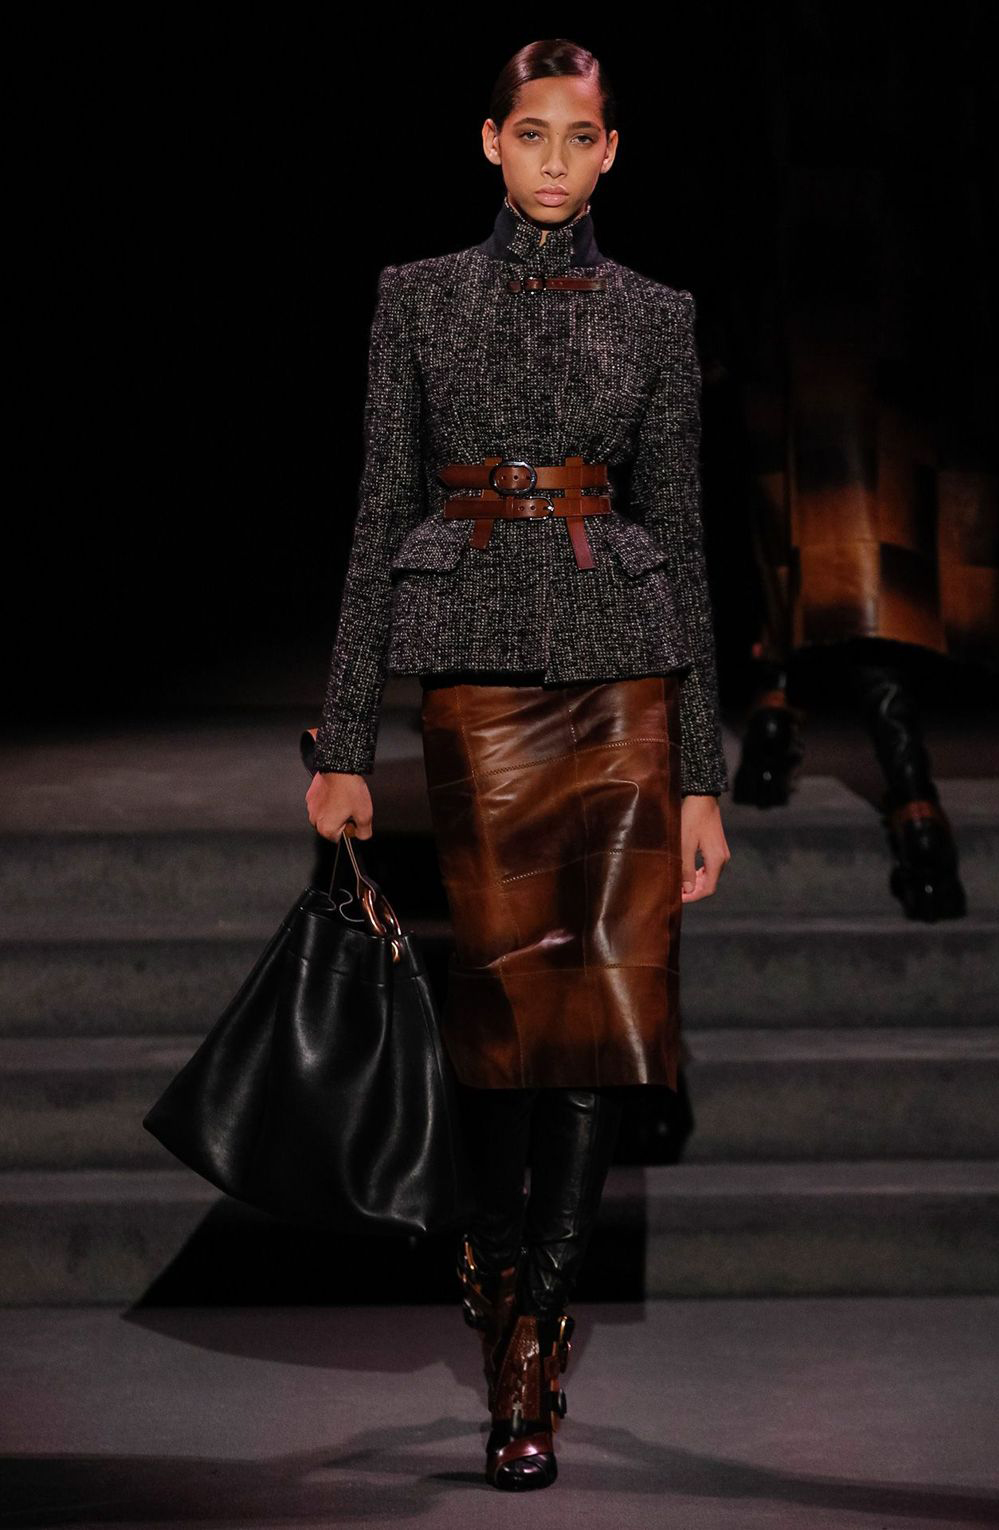 Tom Ford finally delivered what he is really good at... See best looks from Tom Ford Fall 2016 collection and shop off the runway at www.fashionedbylove.co.uk British fashion blog